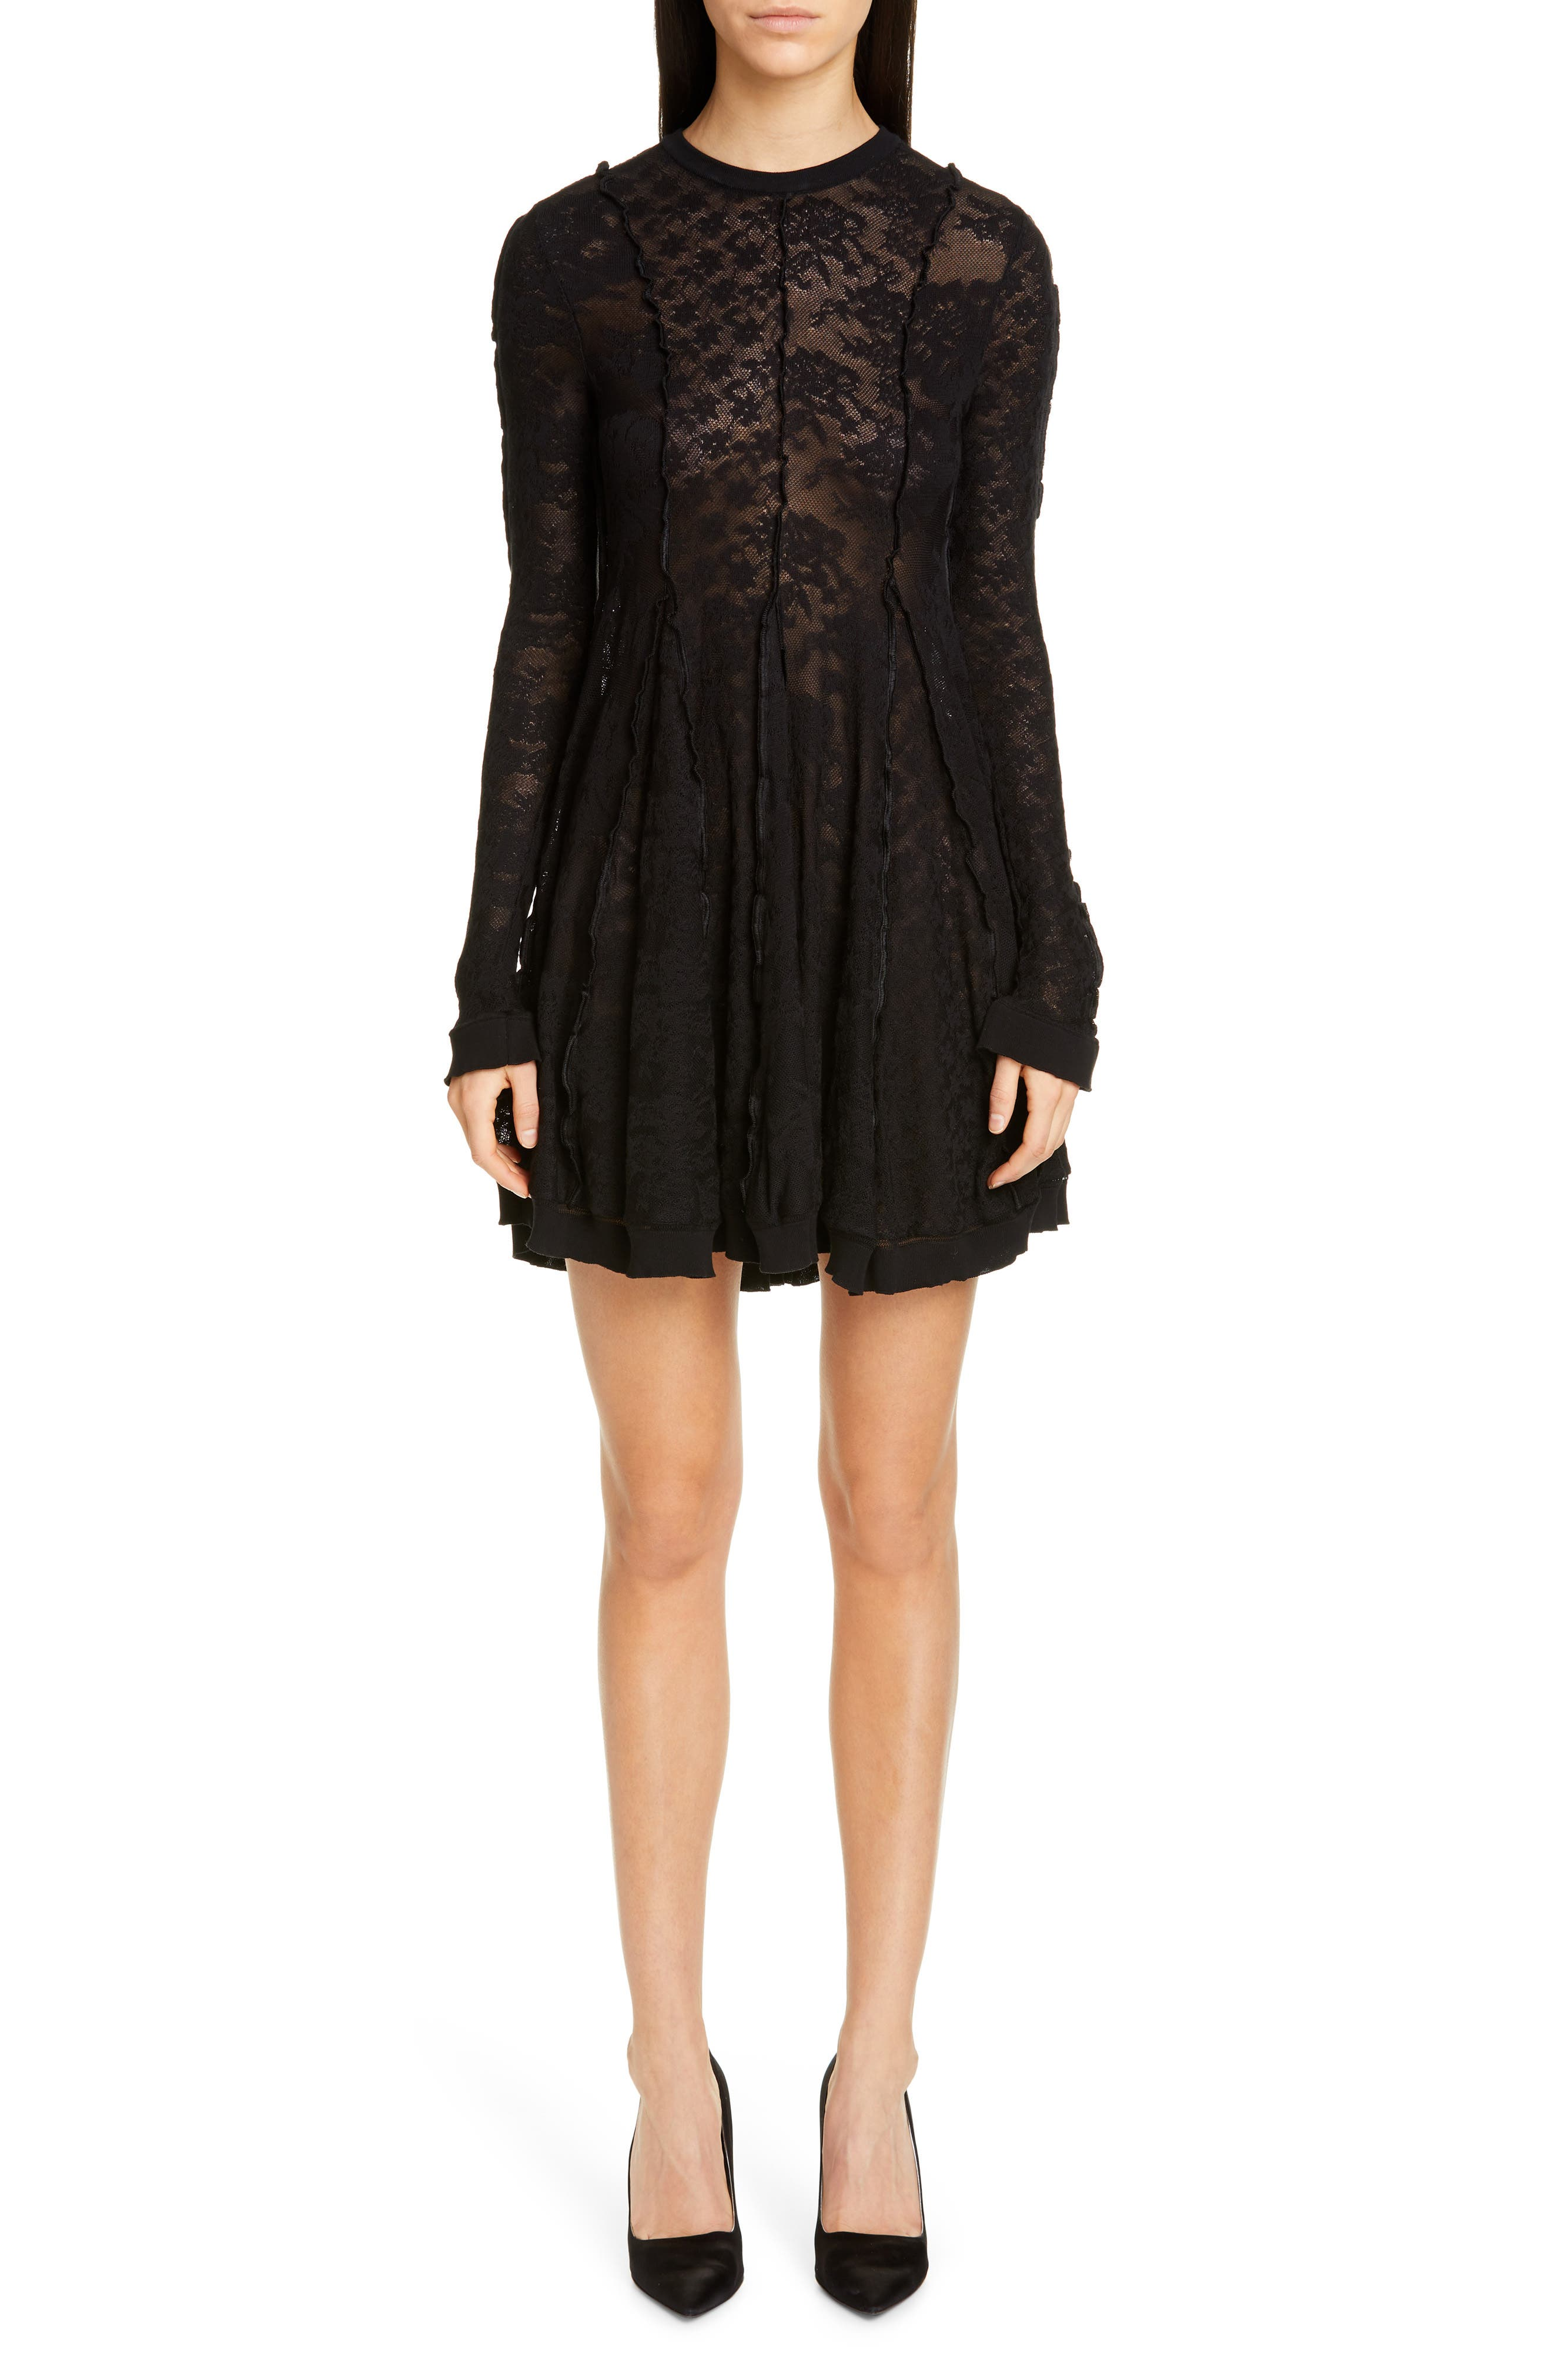 Stella Mccartney Long Sleeve Linear Lace Skater Dress, 4 IT - Black